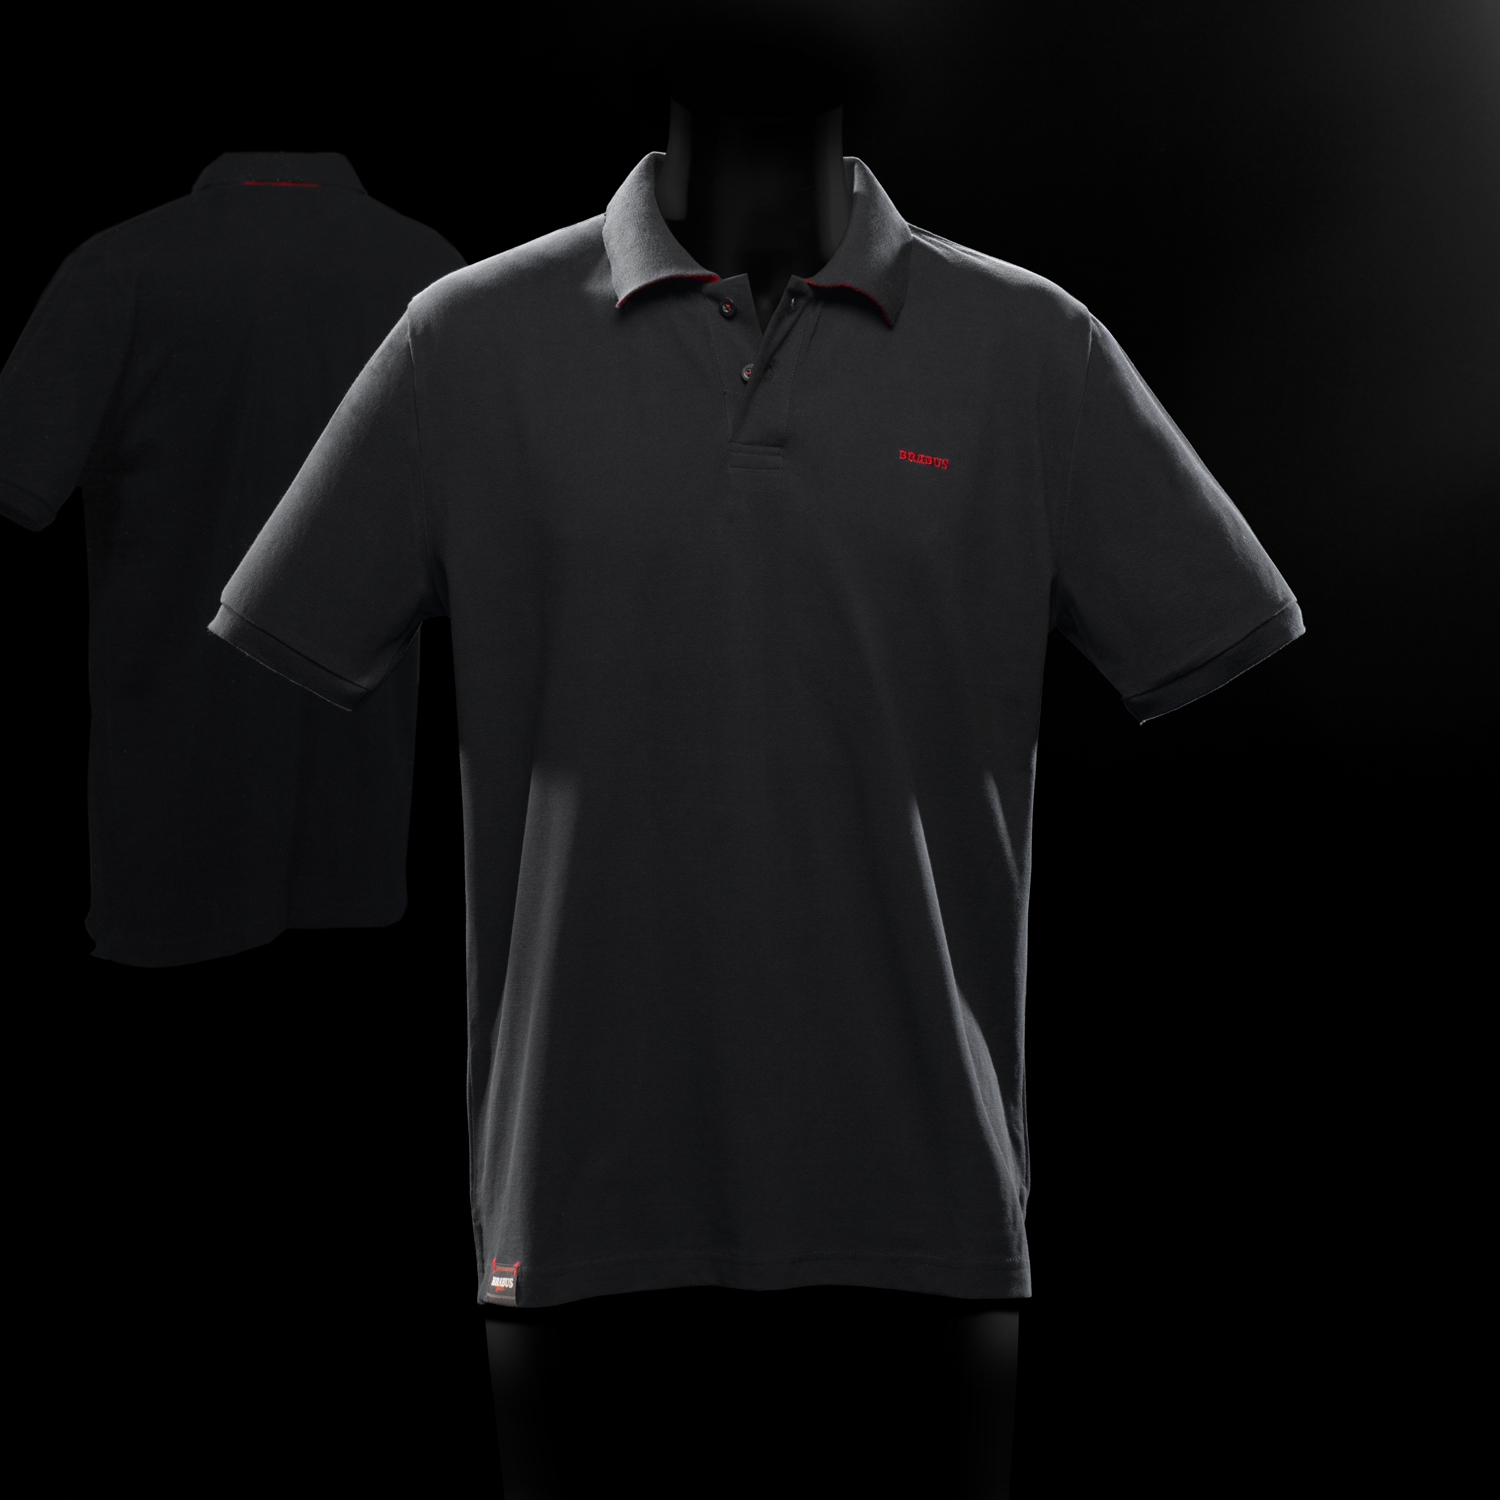 cb2484955 ... cheap ckm car design brabus polo shirt black 76156 b365d